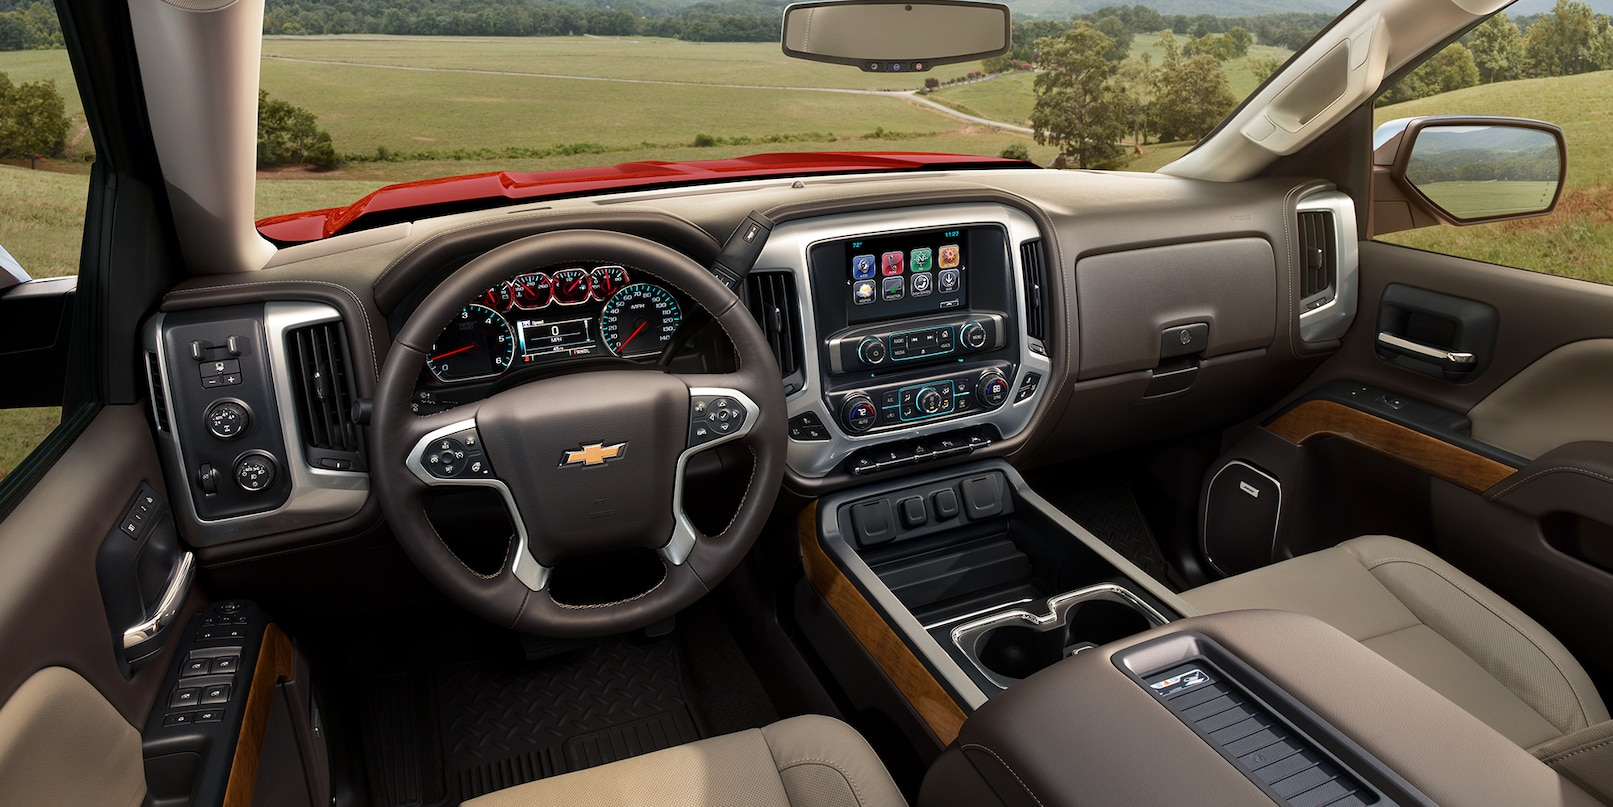 View From the Interior of the 2018 Silverado 1500